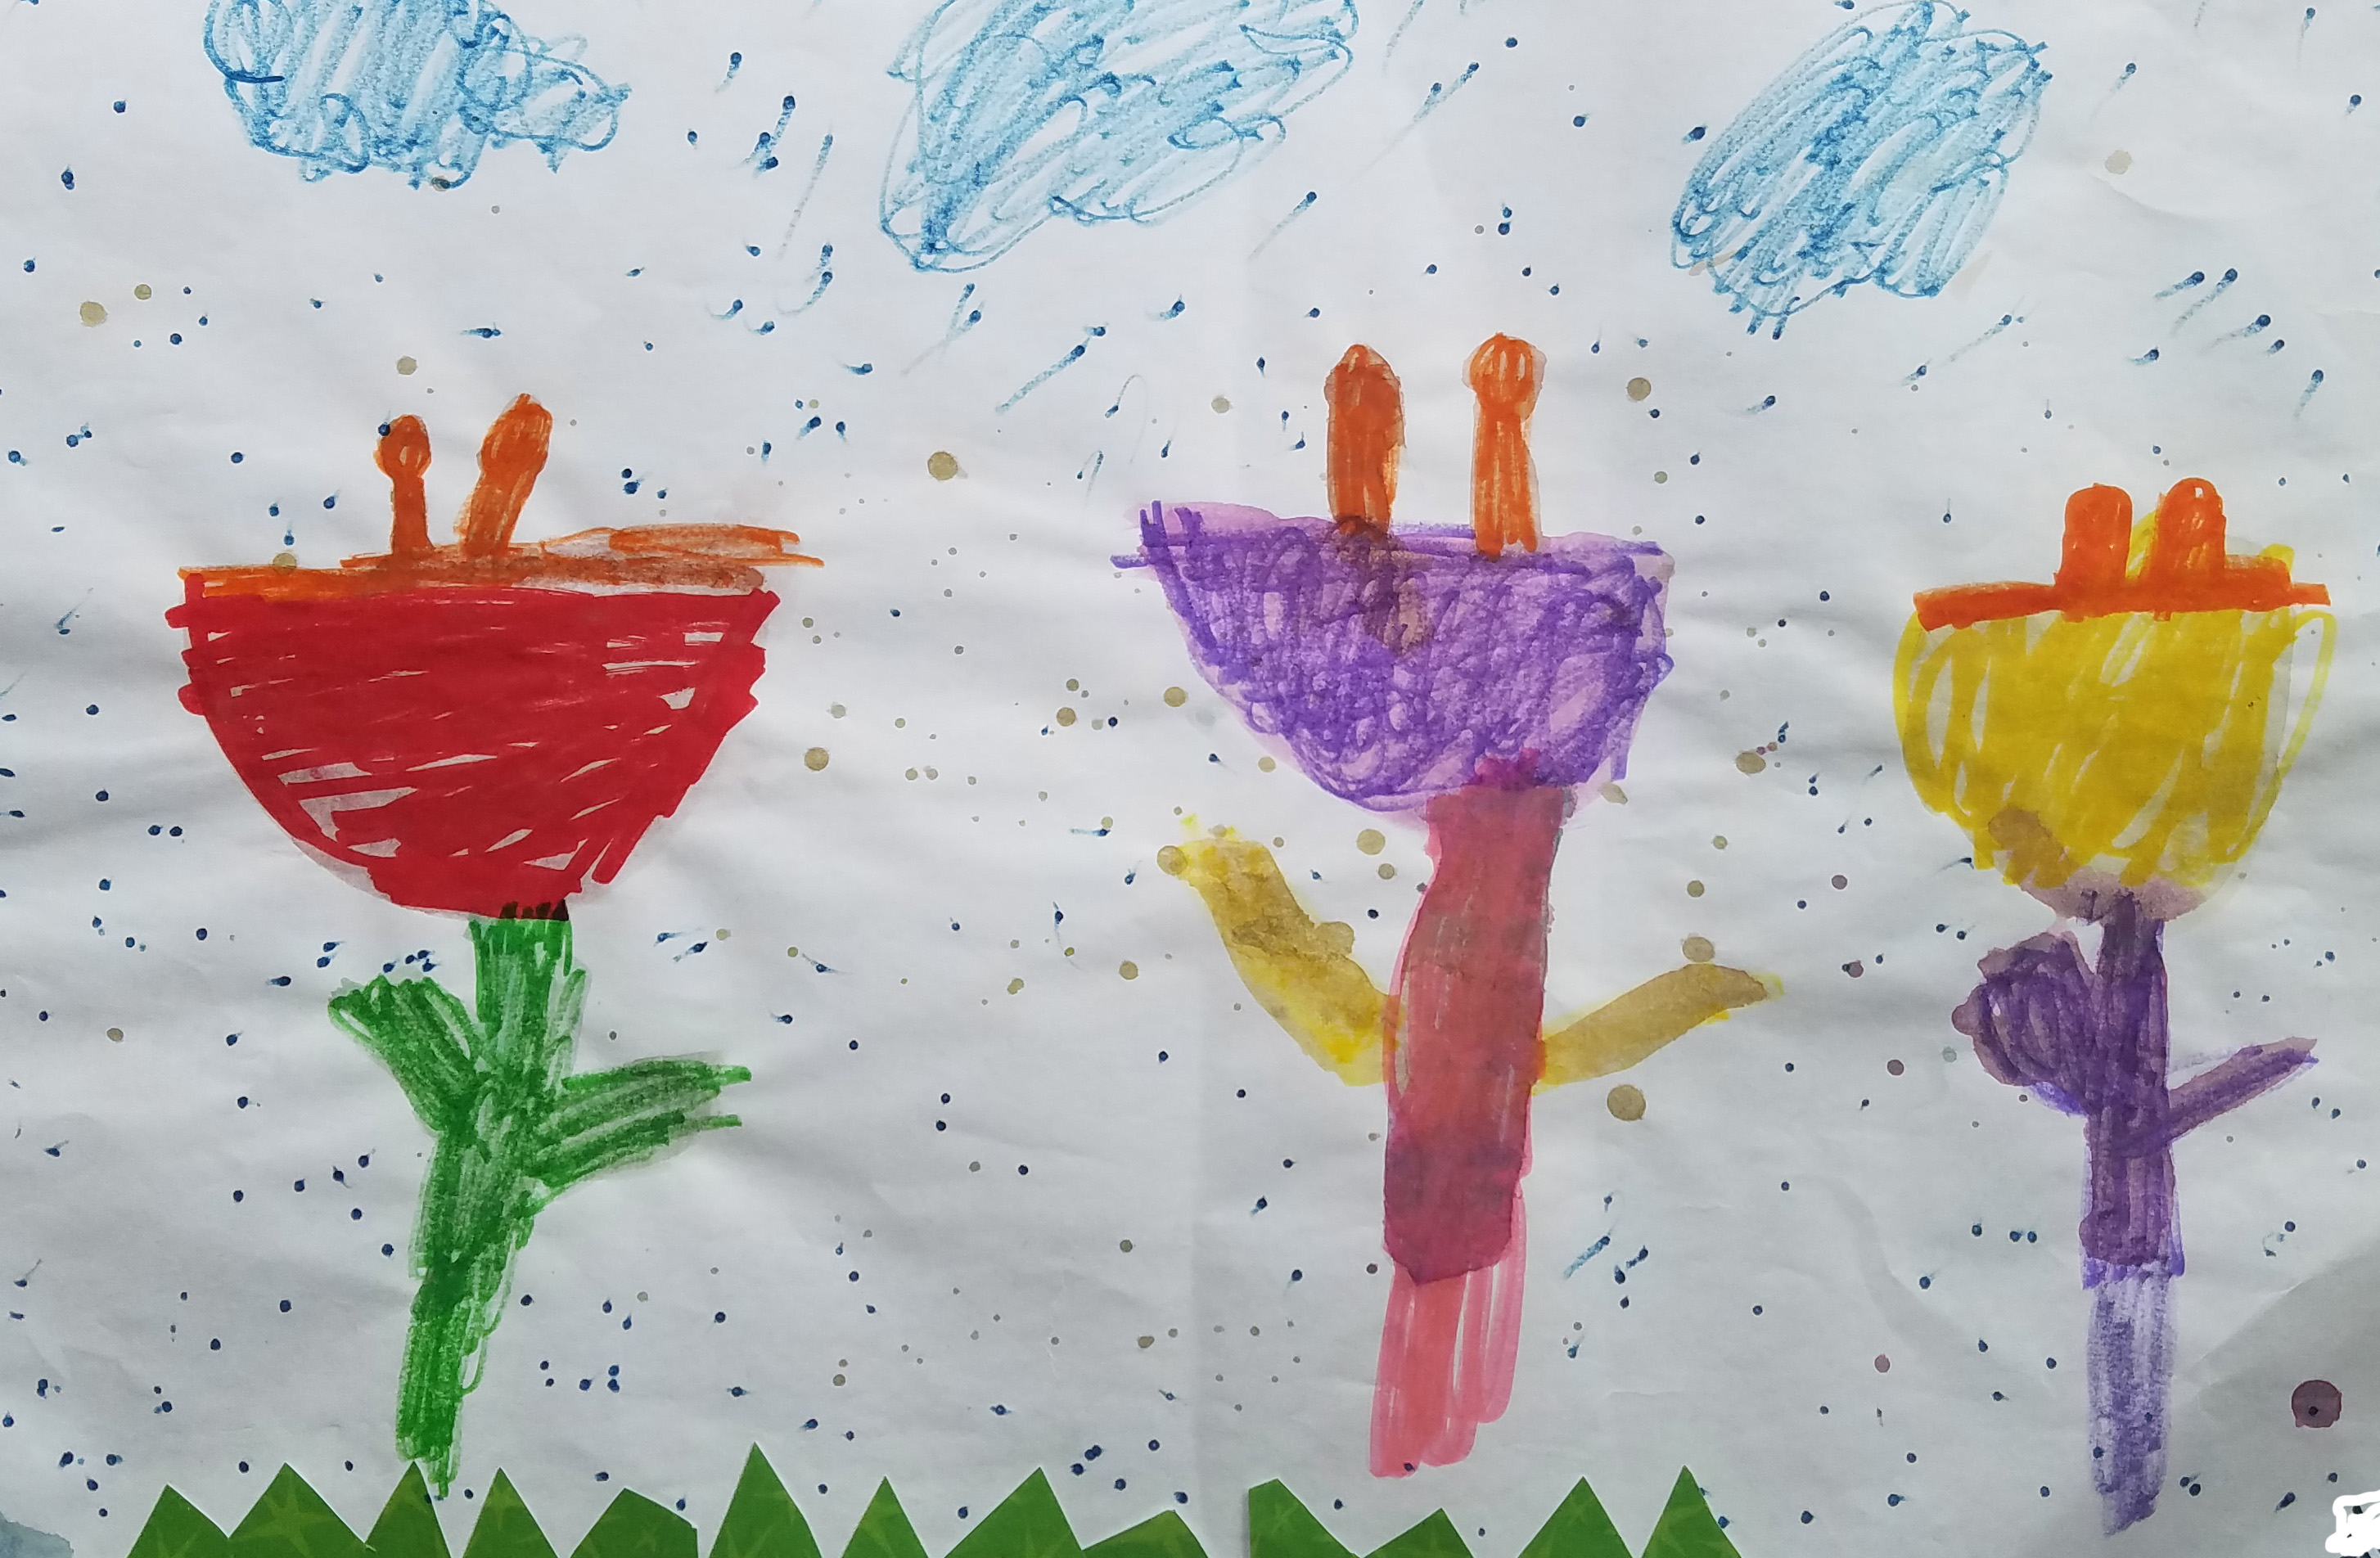 """Anthony, an English Language Learner, wrote """"Flowers in the Rainy"""""""